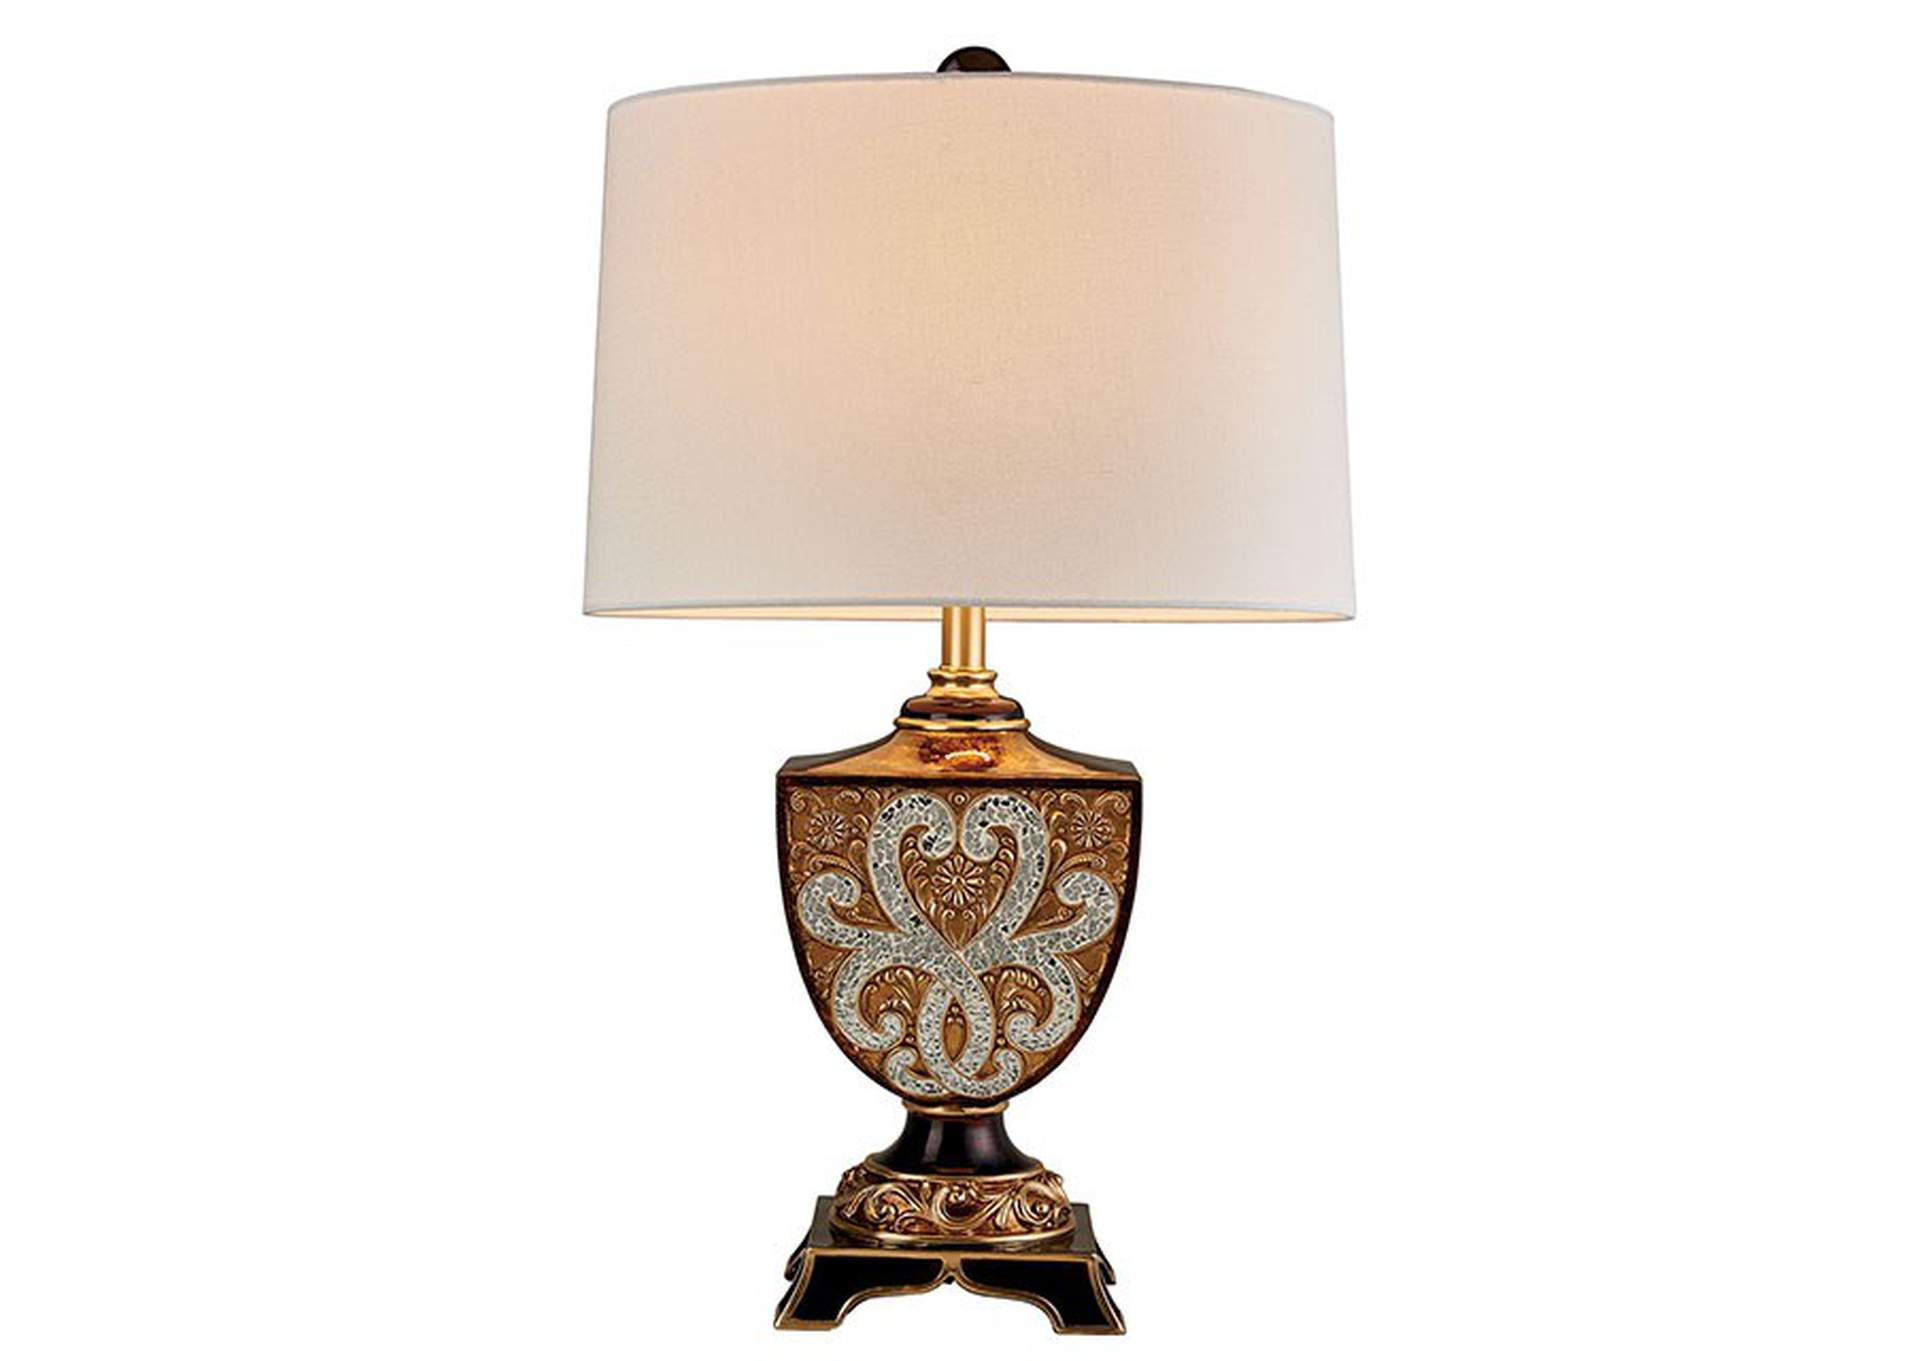 Dolores Table Lamp,Furniture of America